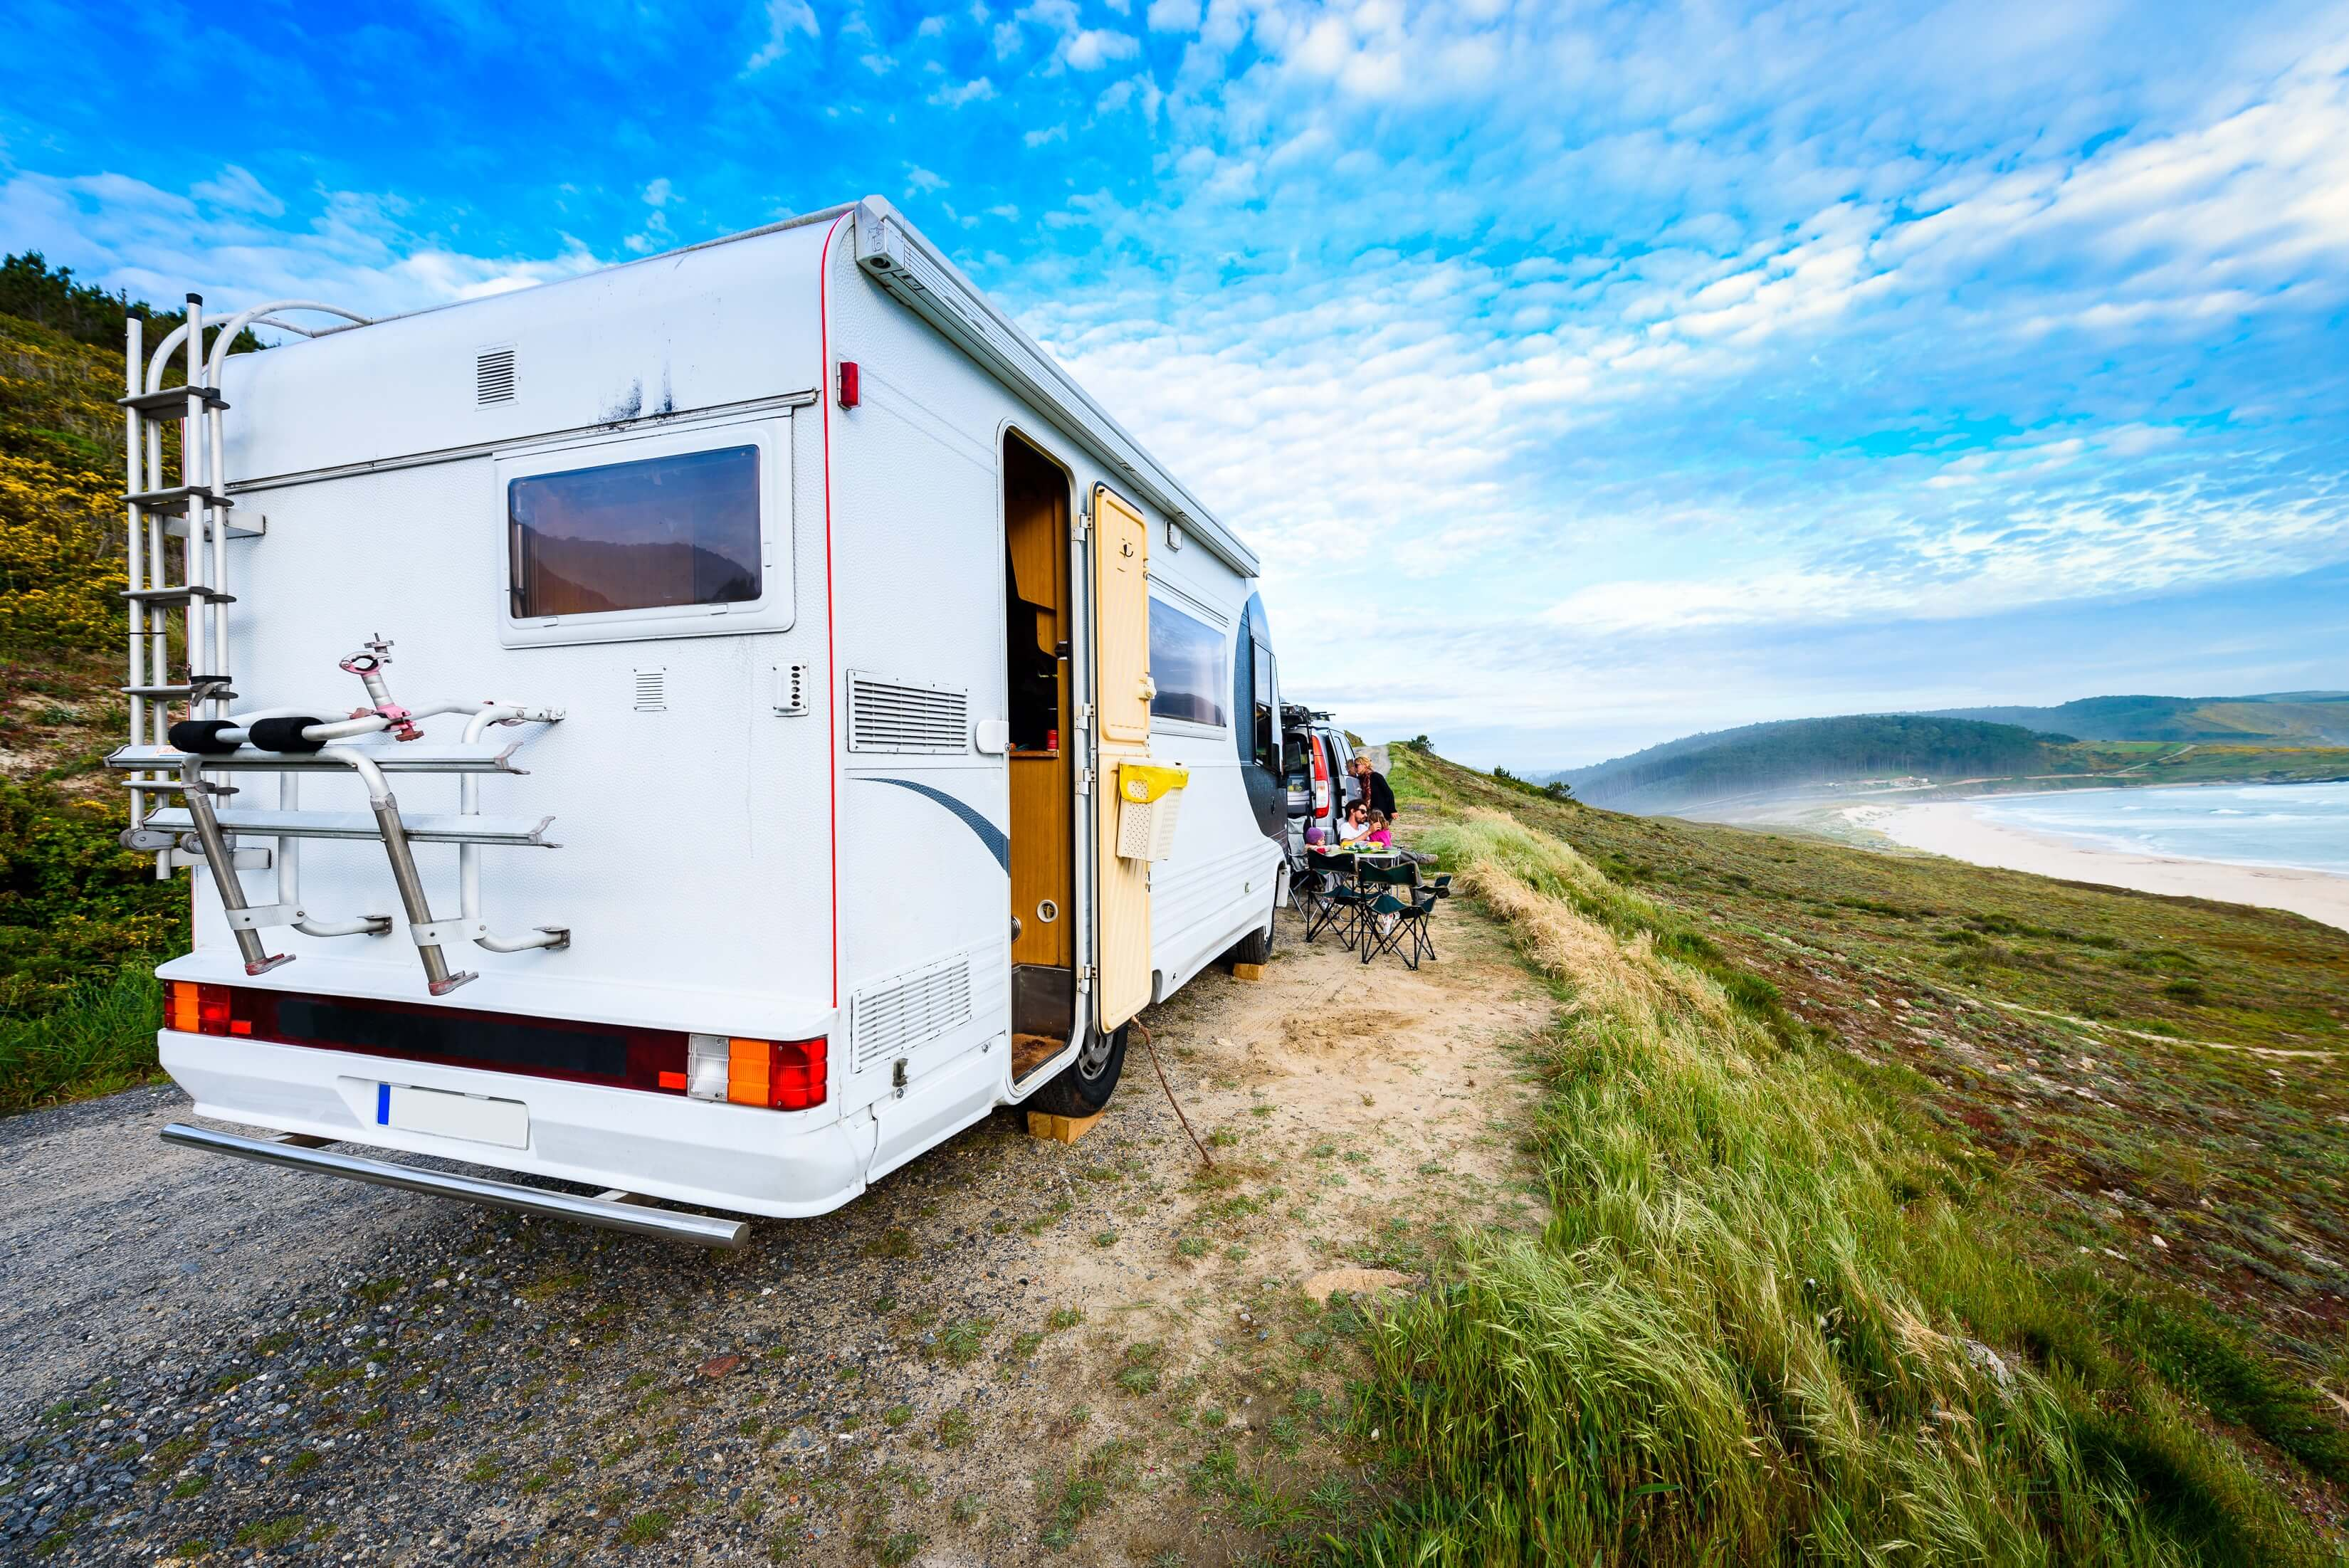 Must Have RV Accessories for Your RV